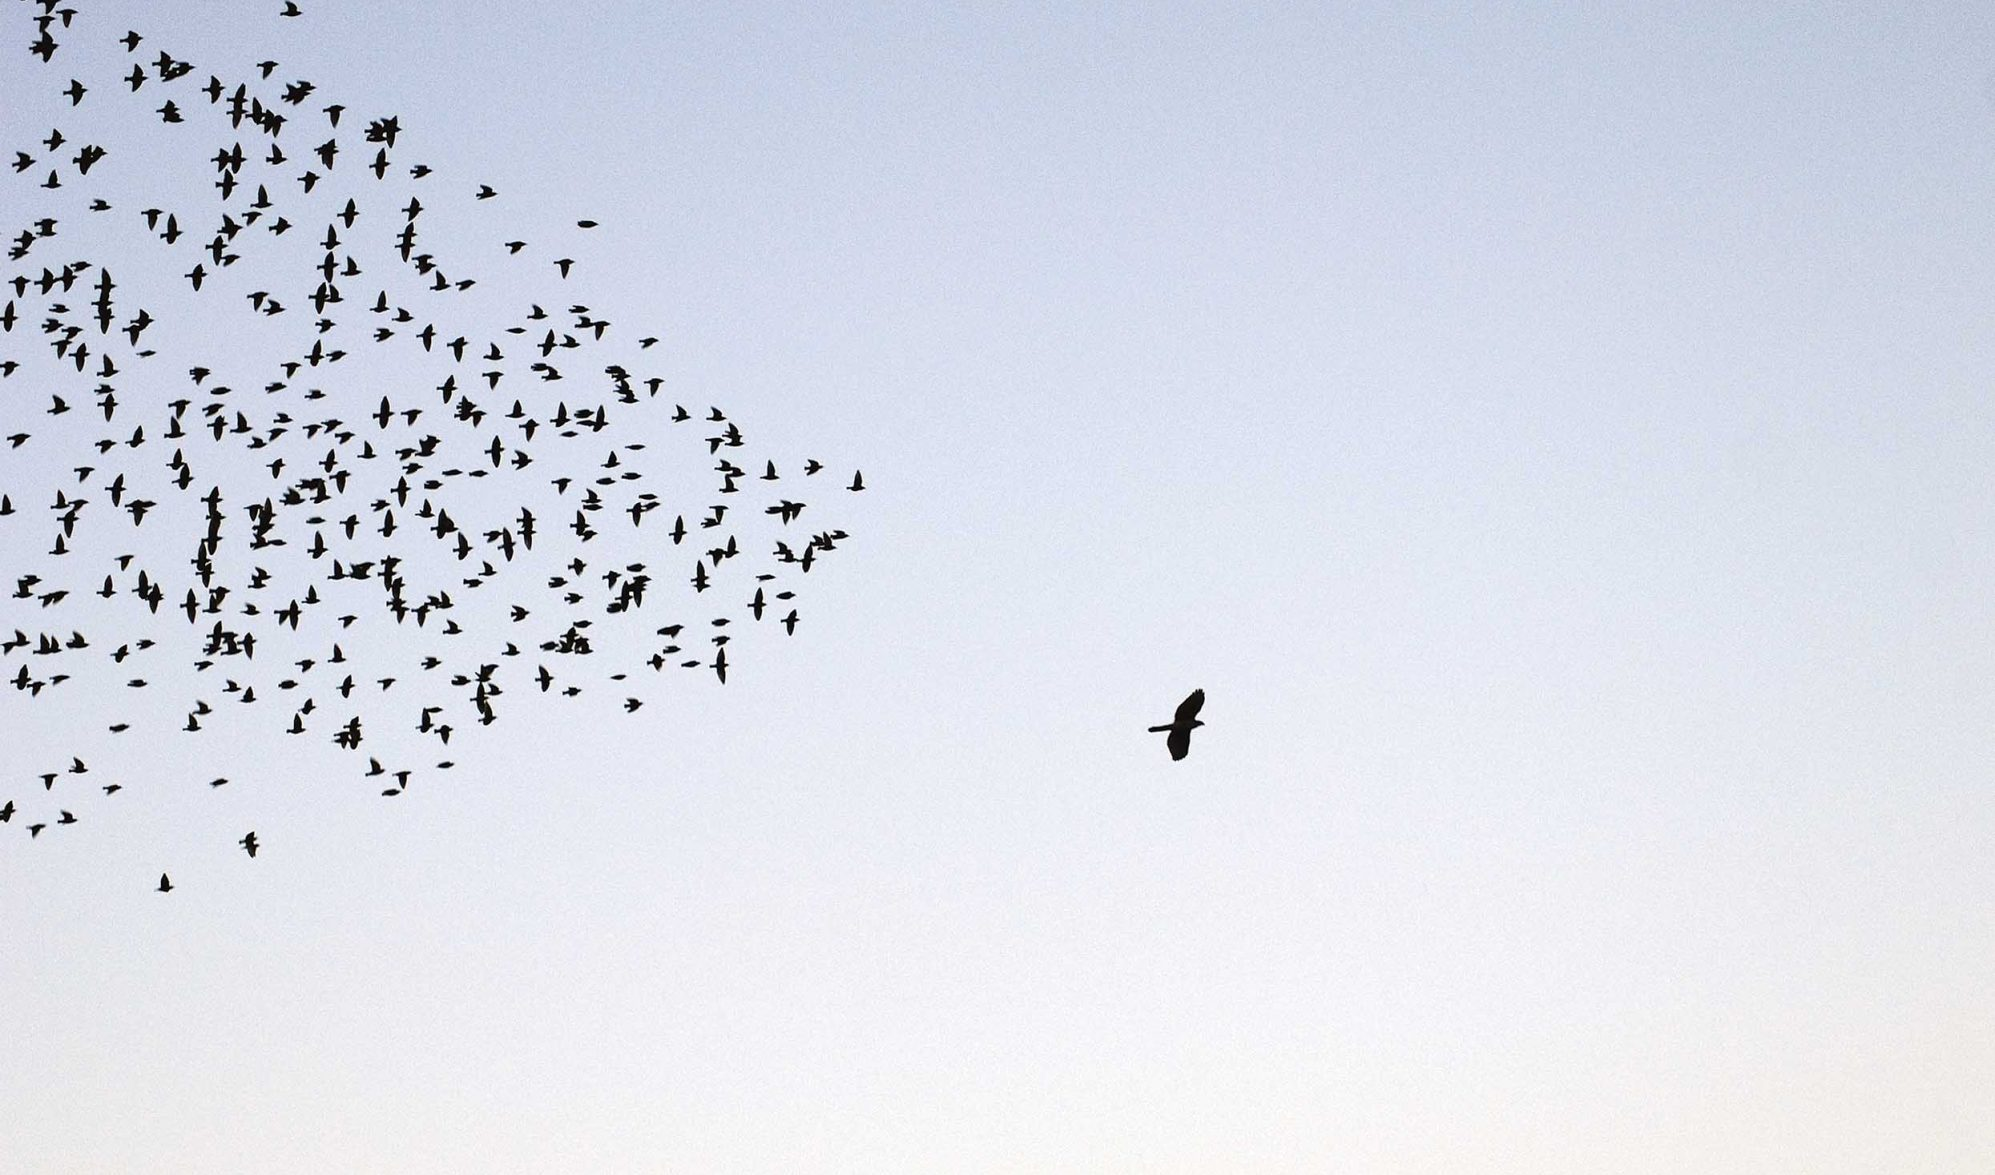 Lone bird leading a flock